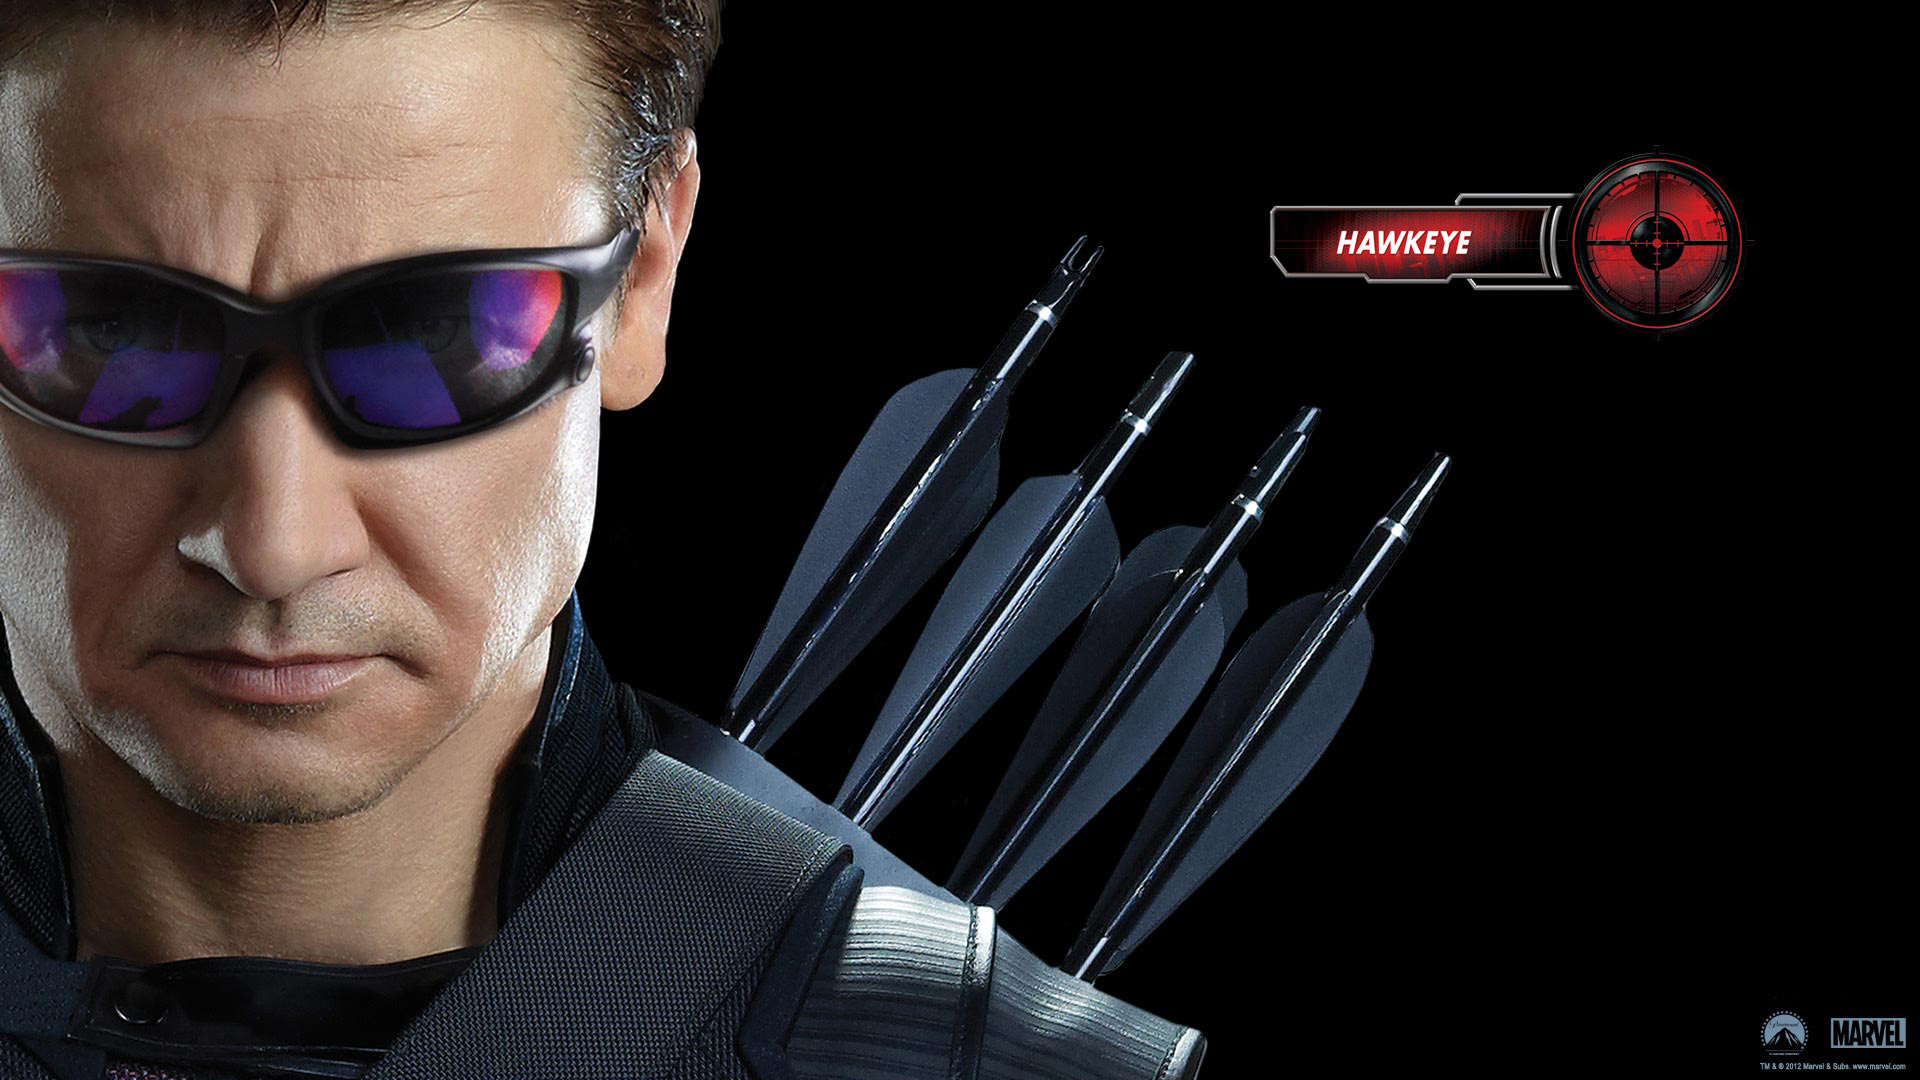 Hawkeye in Avengers Movie wallpaper